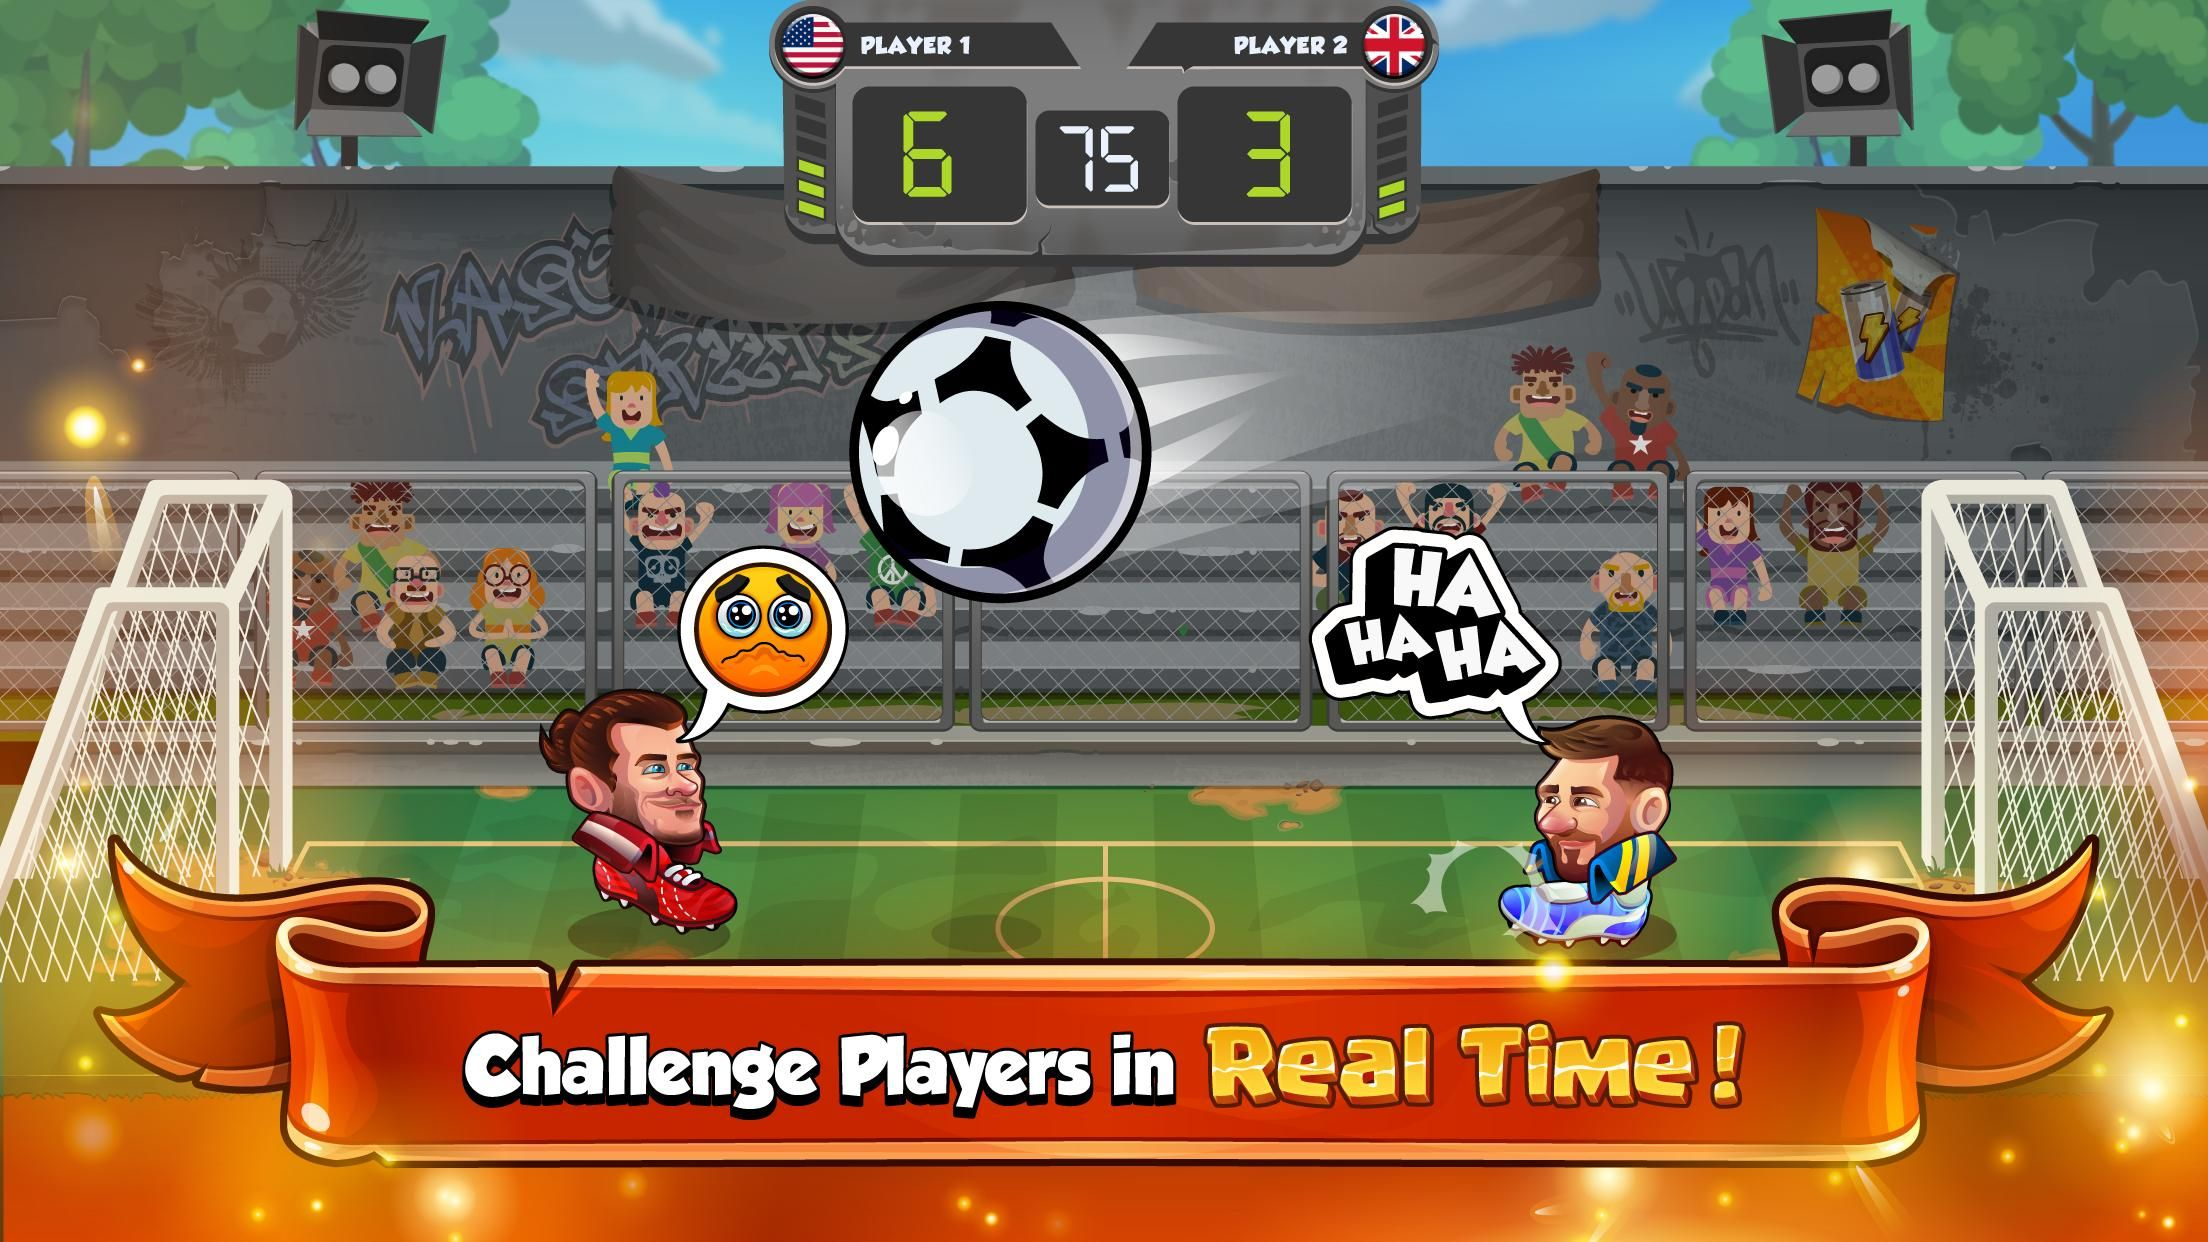 Head Ball 2 Hack In 2020 Free Games Game Resources Games